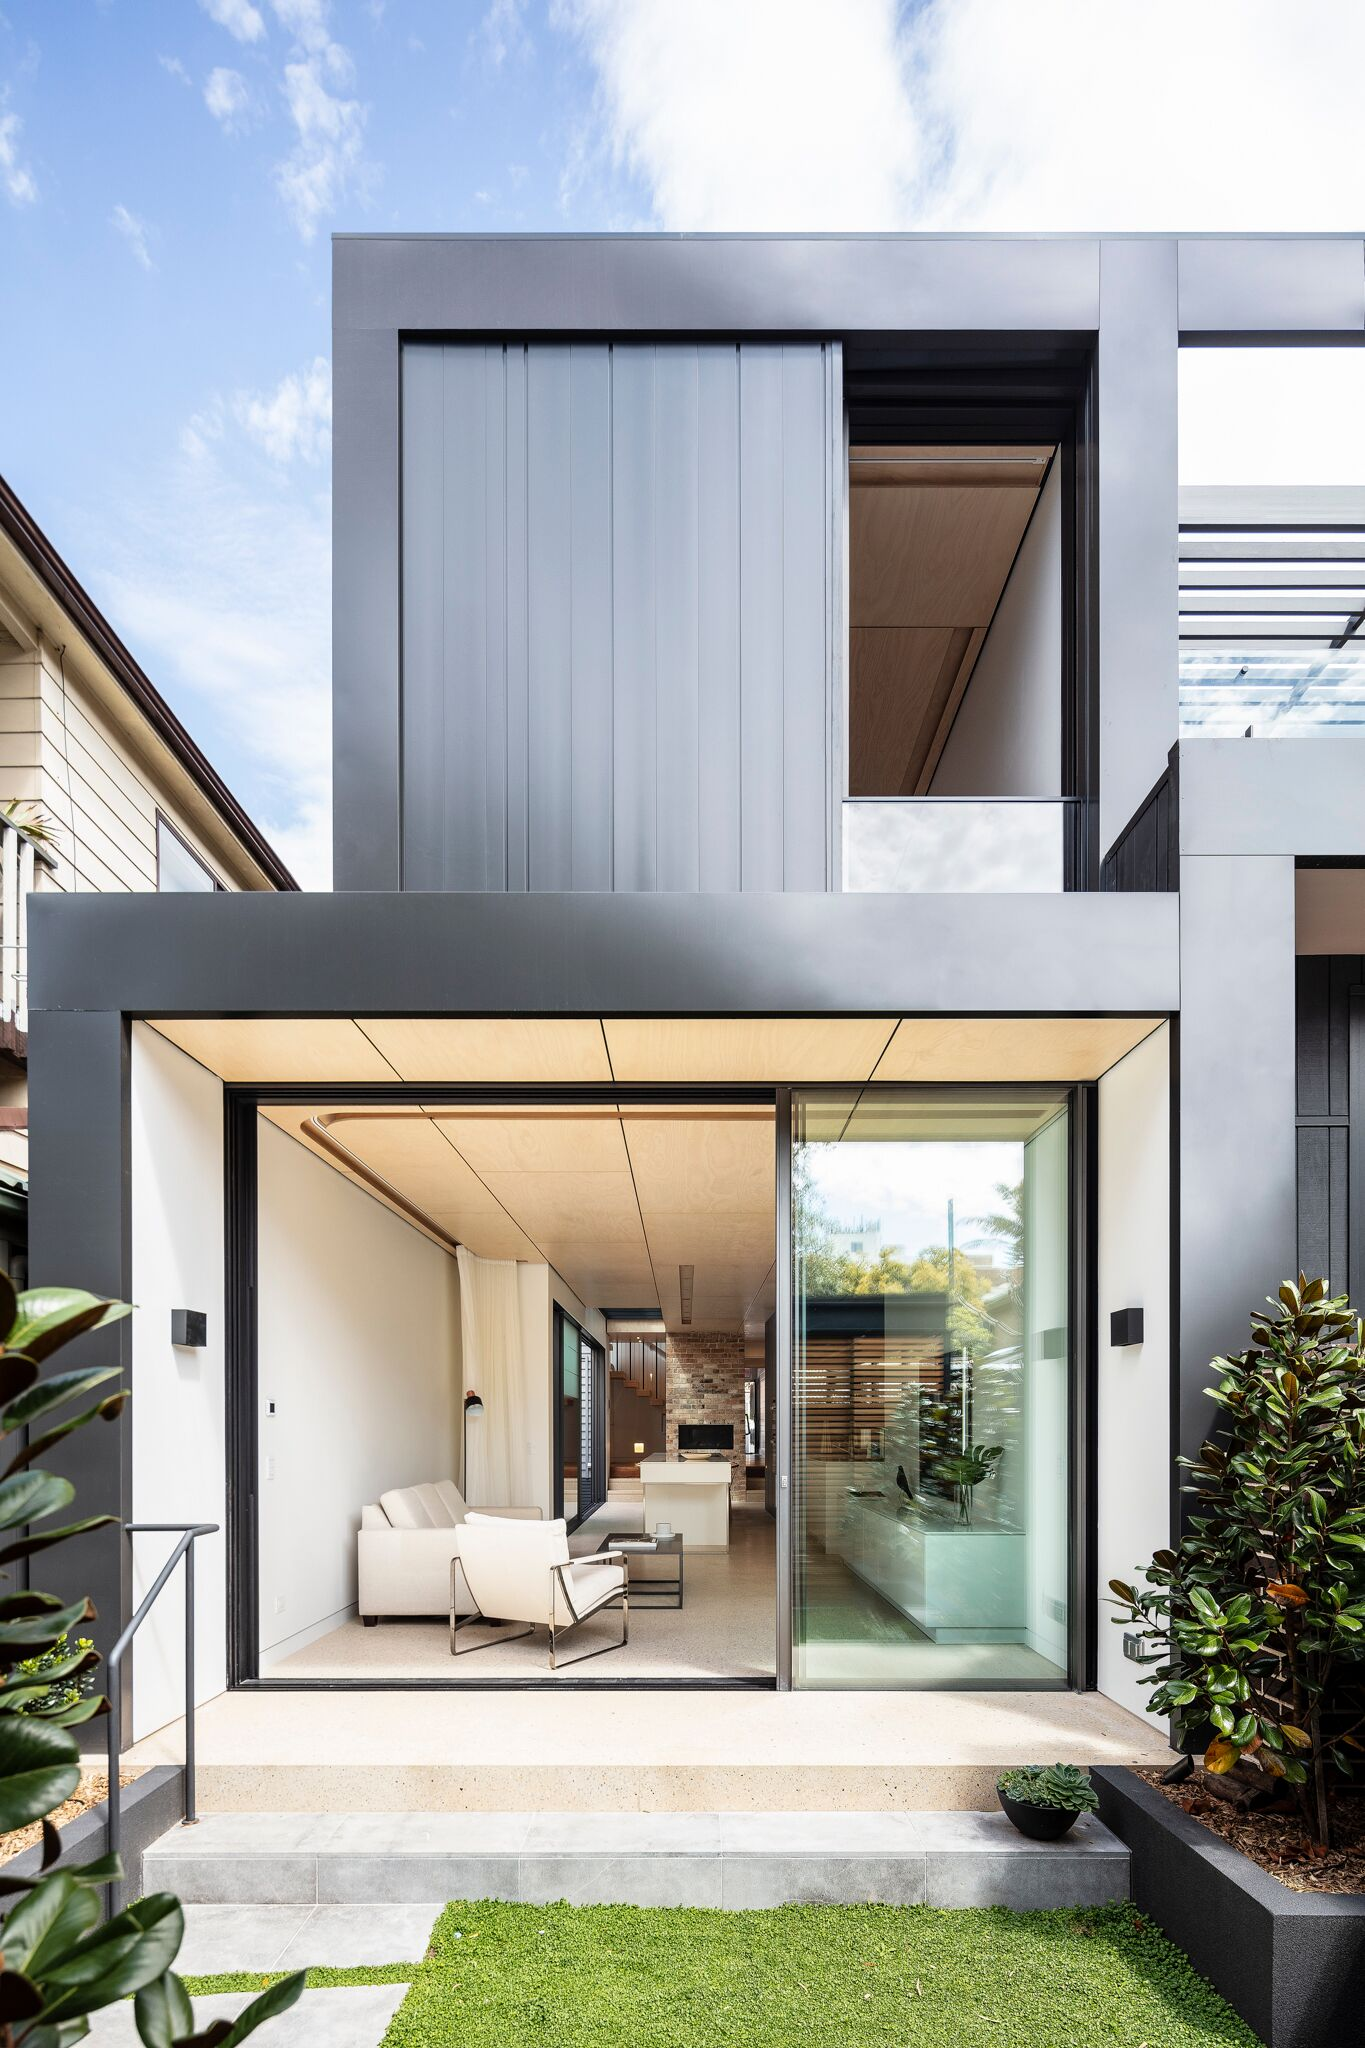 Archisoul Took The Opportunity To Engage With The Building's History While Creating A Light Filled Contemporary Home.